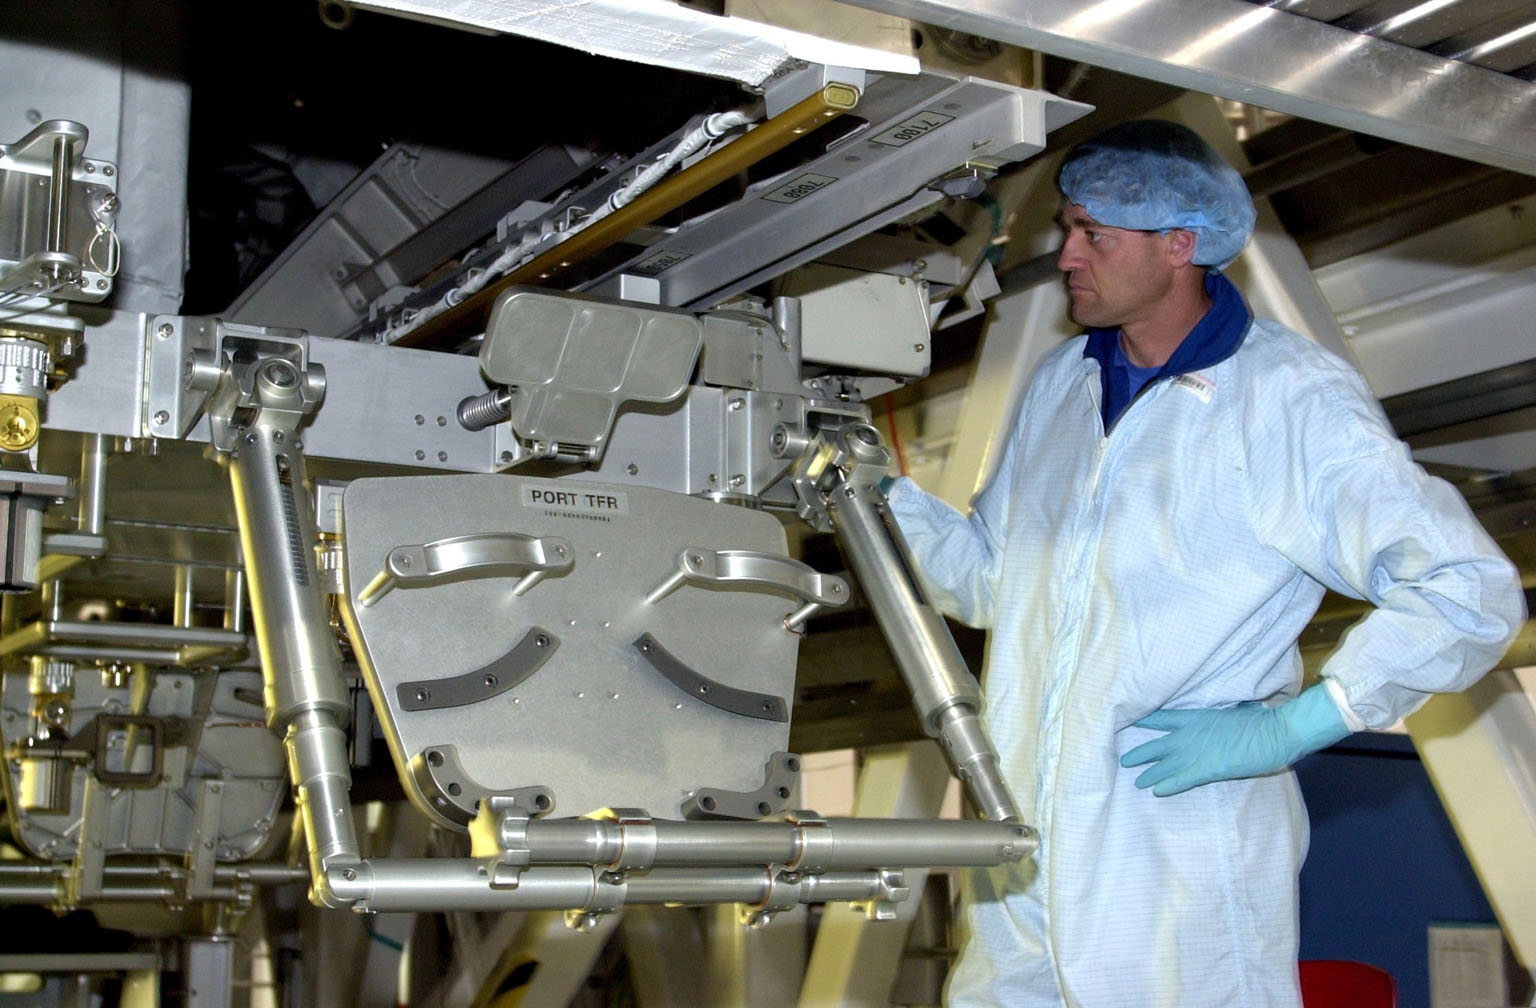 KENNEDY SPACE CENTER, FLA. -- In the Space Station Processing Facility, as part of the Crew Equipment Interface Test, STS-112 Commander Jeffrey Ashby looks over the S1 Integrated Truss Structure, part of the payload for the mission to the International Space Station. The S1 truss is the first starboard (right-side) truss segment, whose main job is providing structural support for the orbiting research facility's radiator panels that cool the Space Station's complex power system. The S1 truss segment also will house communications systems, external experiment positions and other subsystems. The S1 truss will be attached to the S0 truss. Launch of STS-112 is scheduled for Aug. 22, 2002